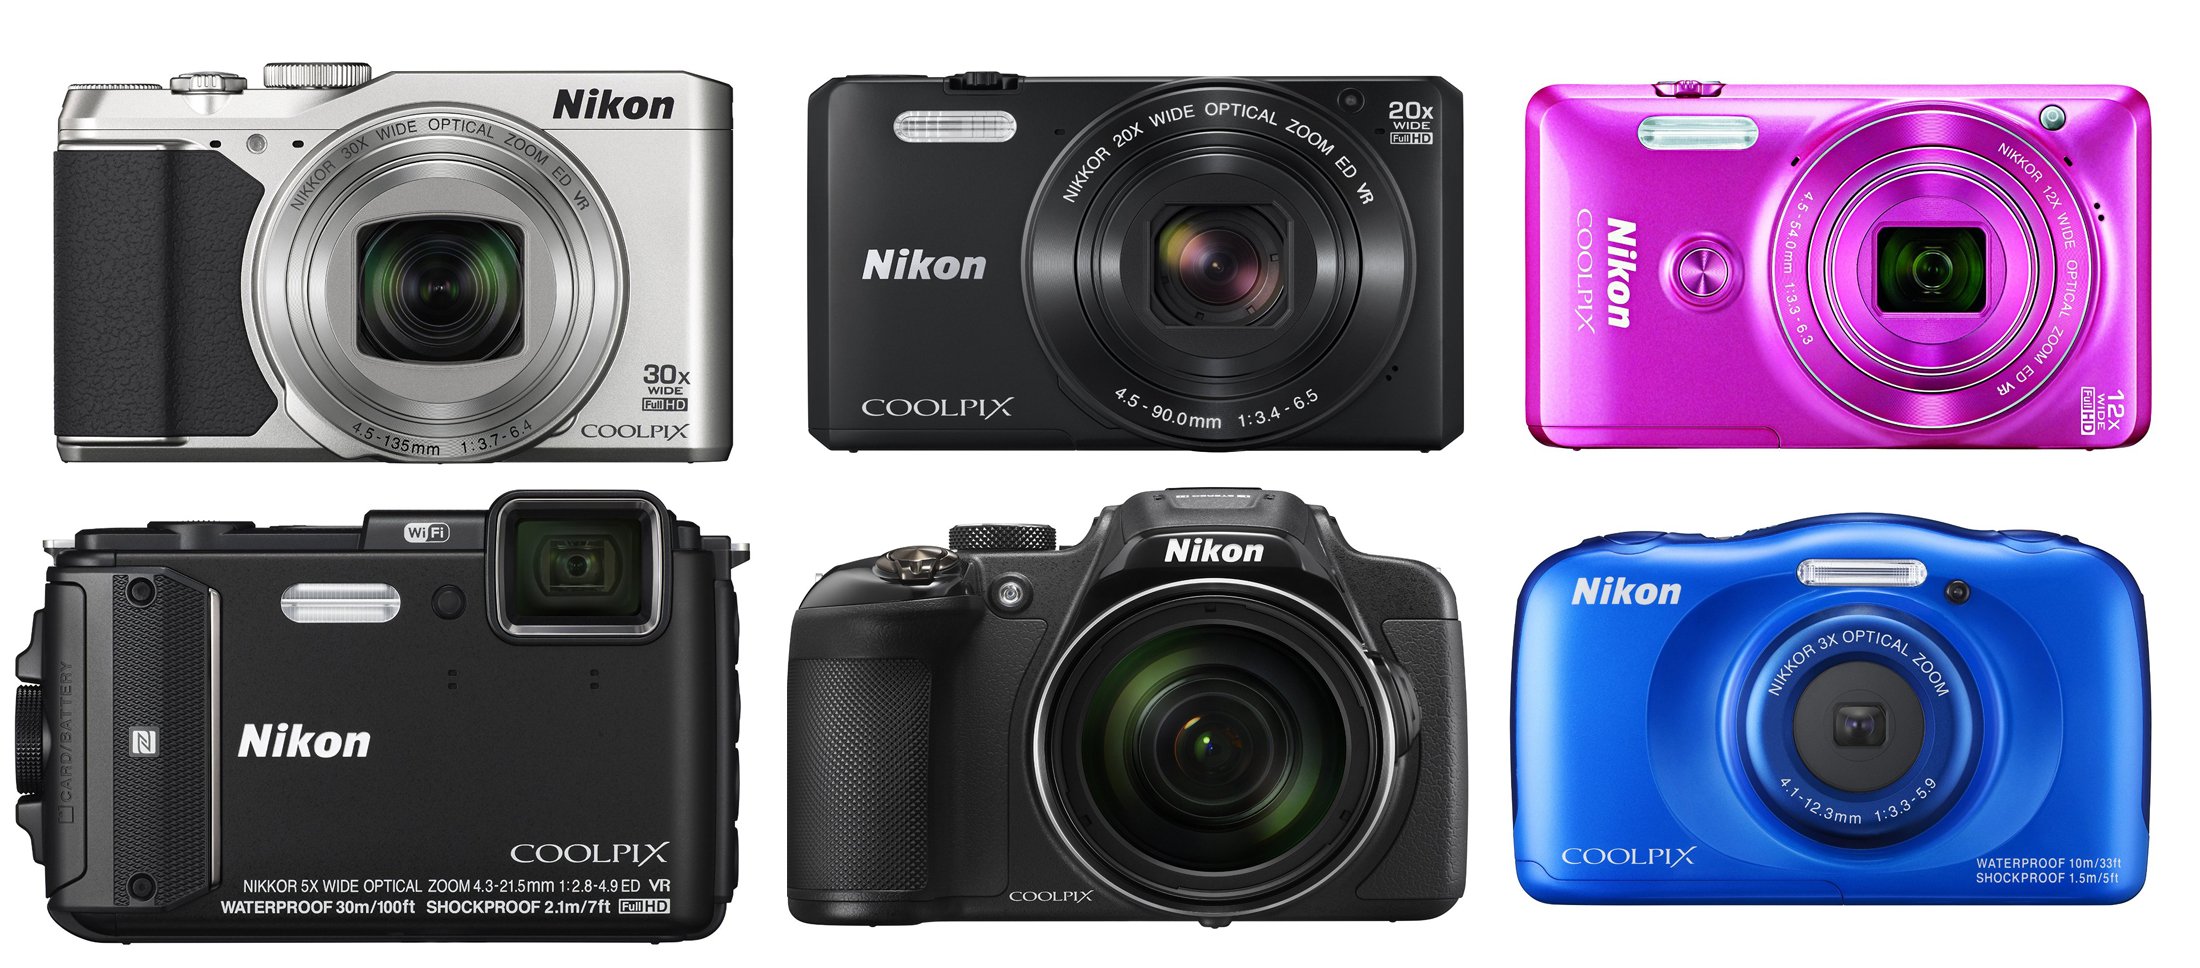 new-nikon-coolpix-cameras-announced-in-Feb-10